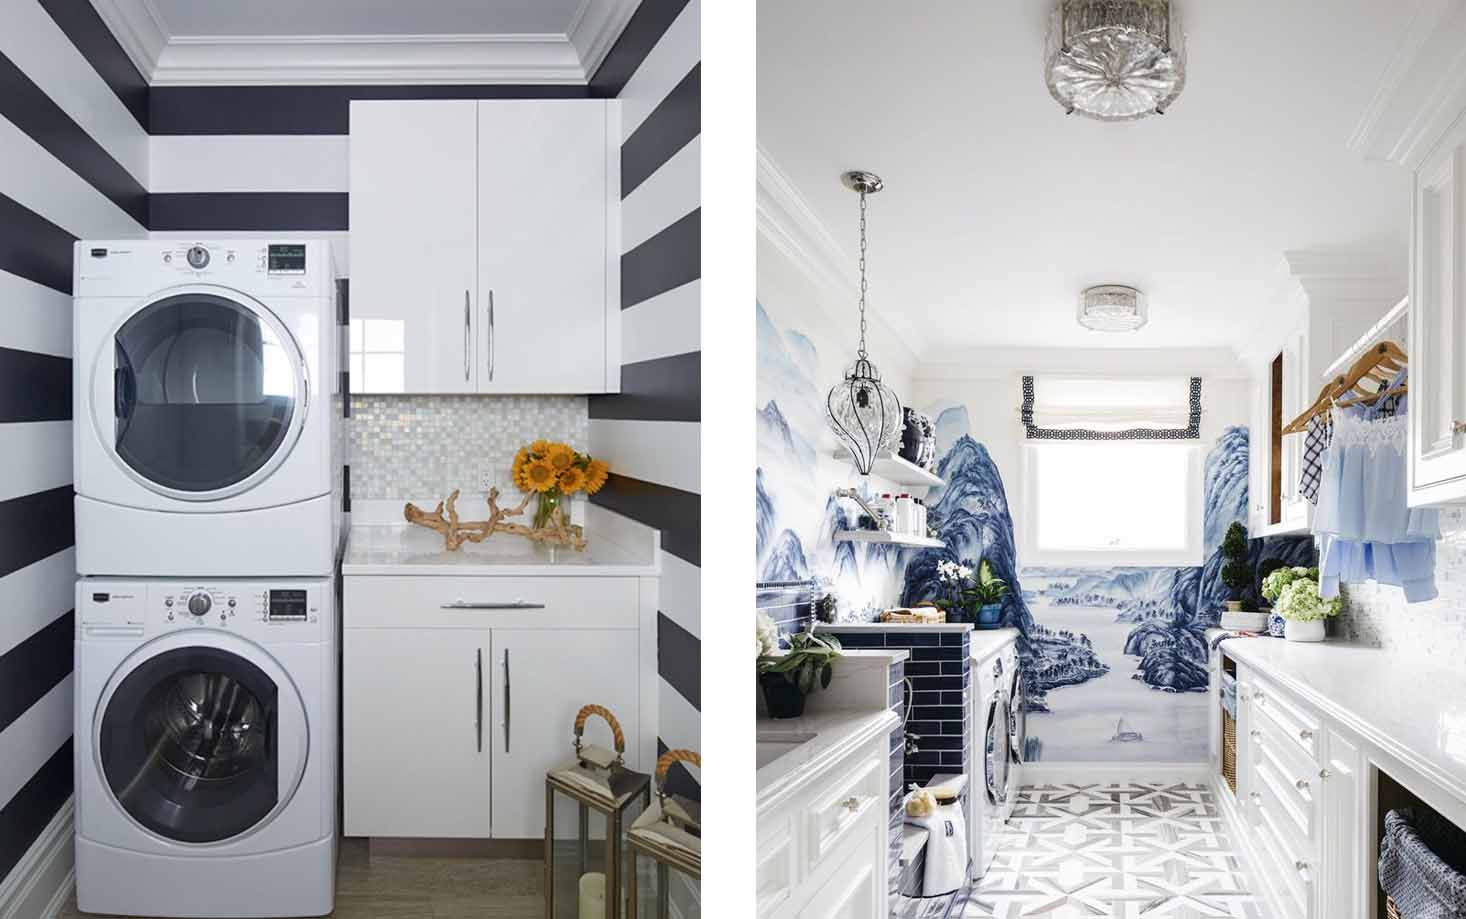 29 Beautiful Small Laundry Room Ideas - Best Laundry Room Designs